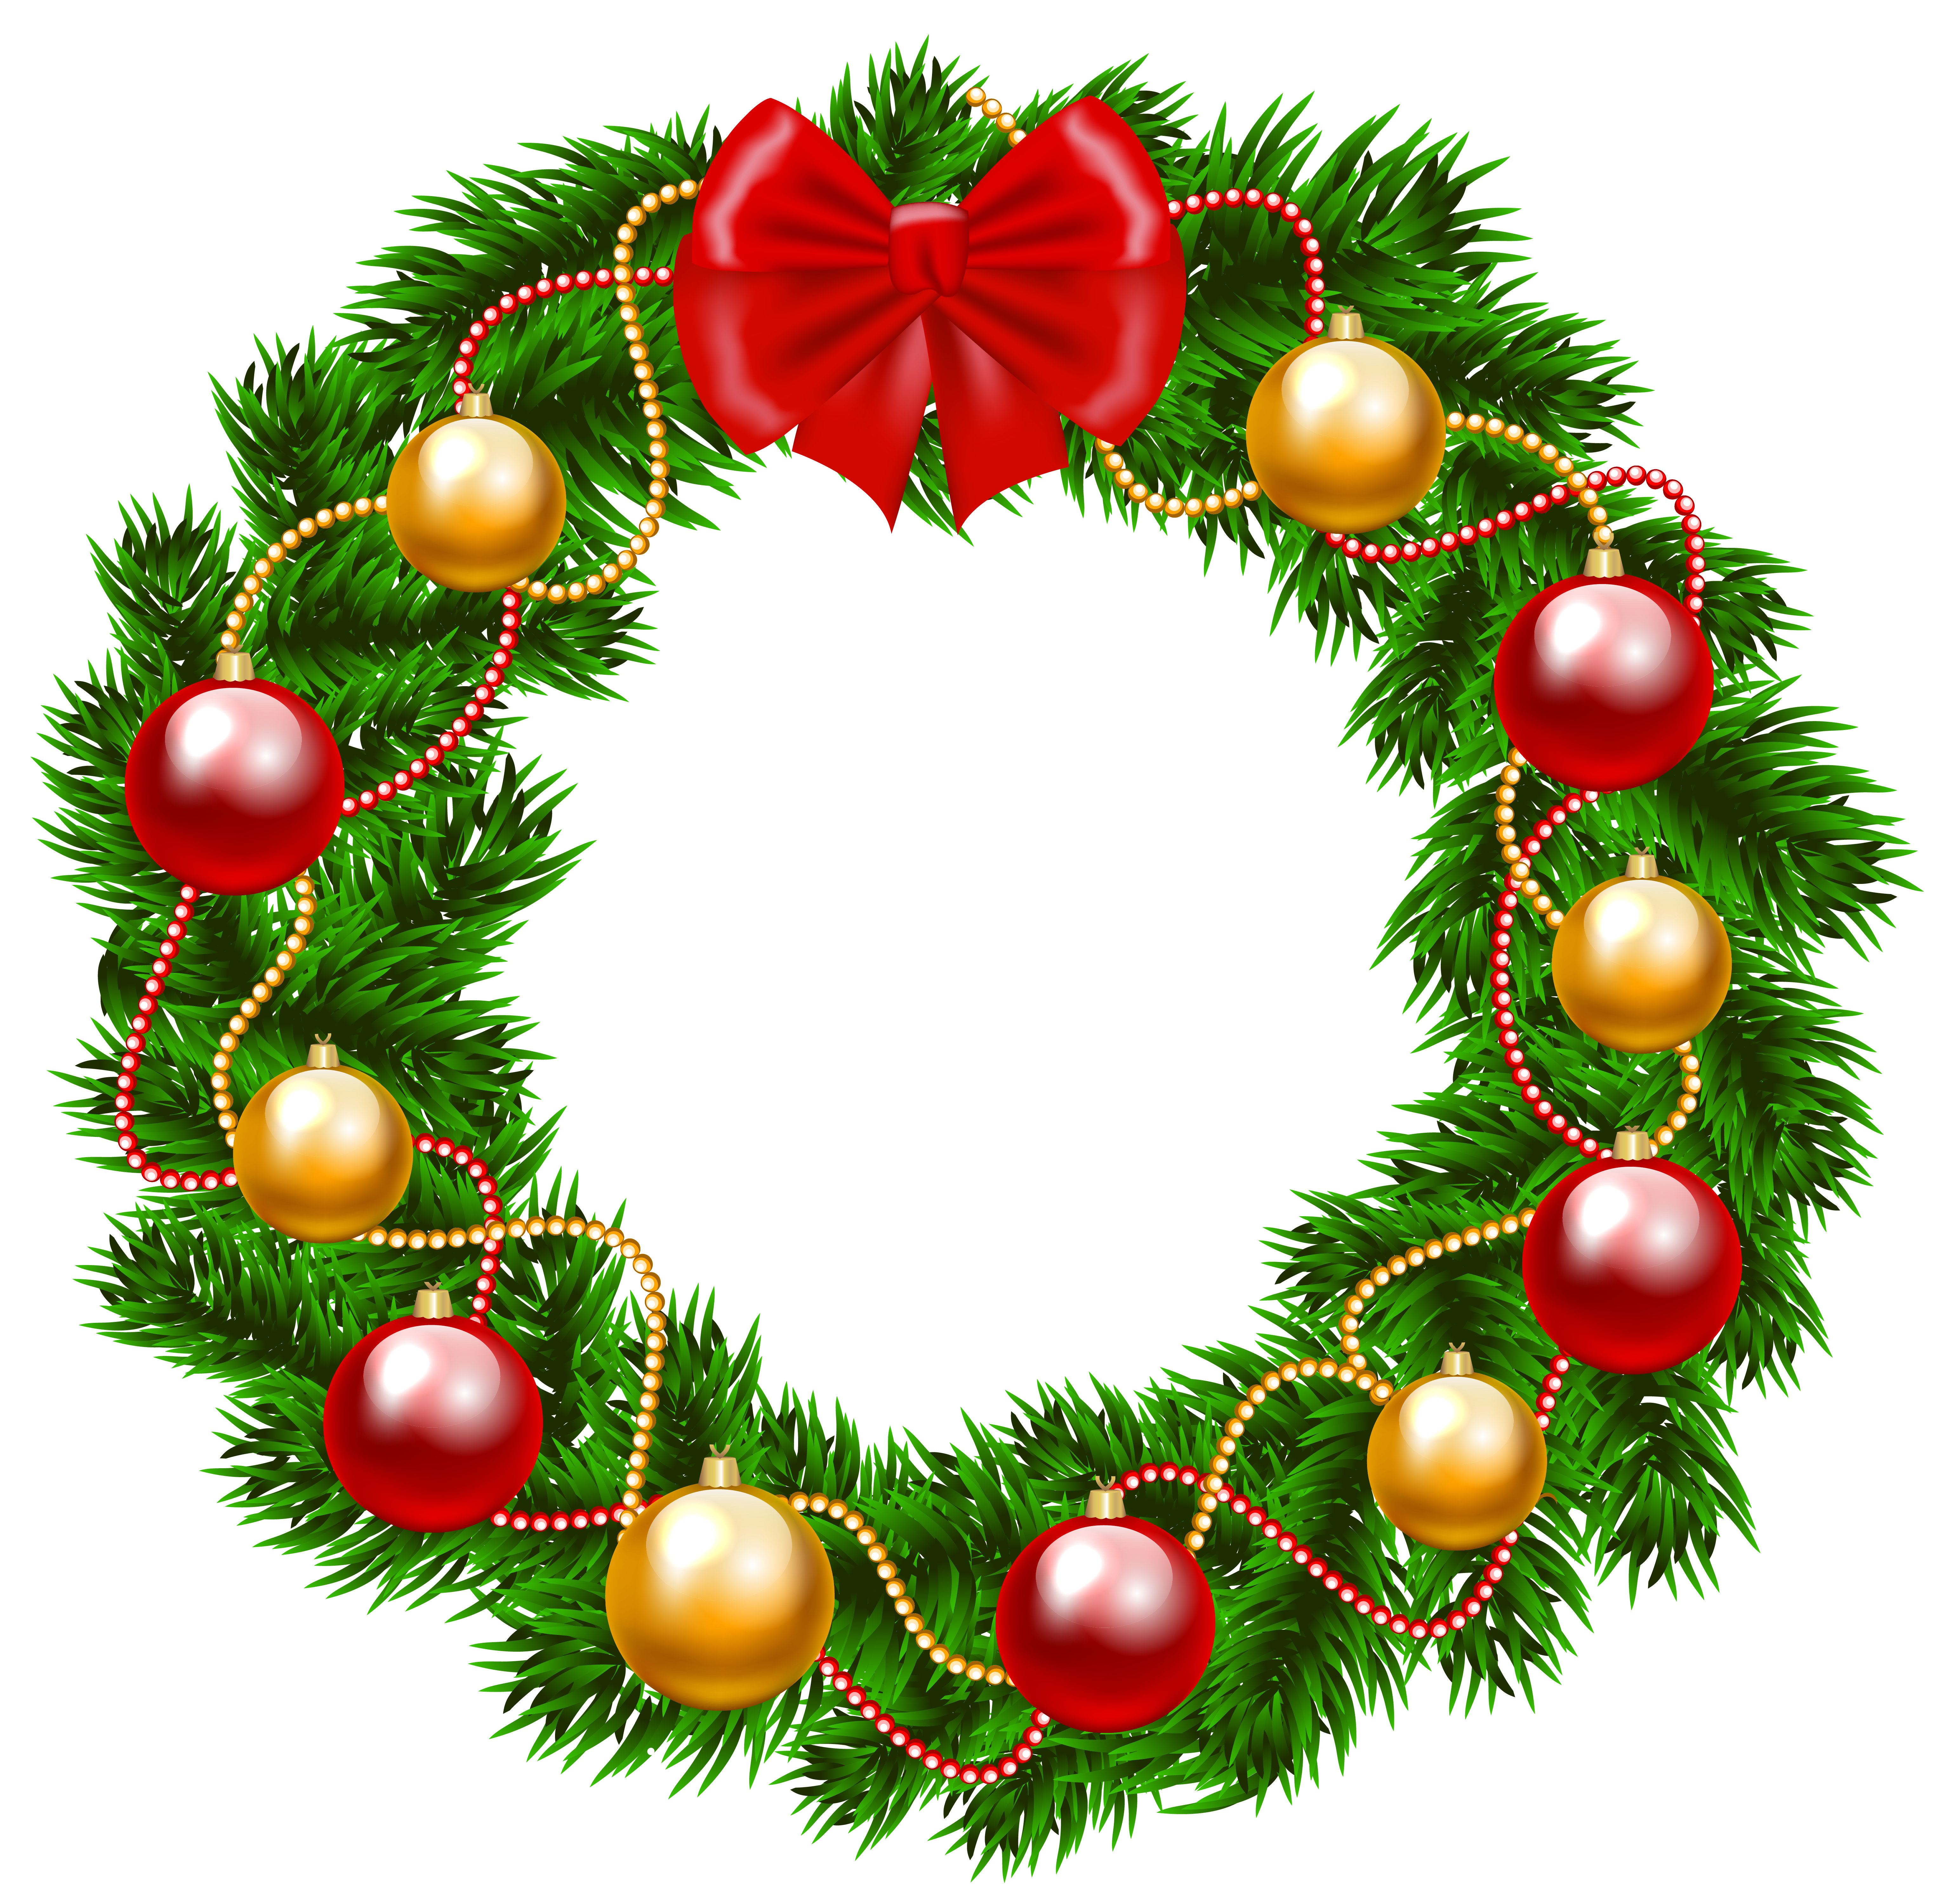 image black and white library Christmas png image gallery. Holiday wreath clipart